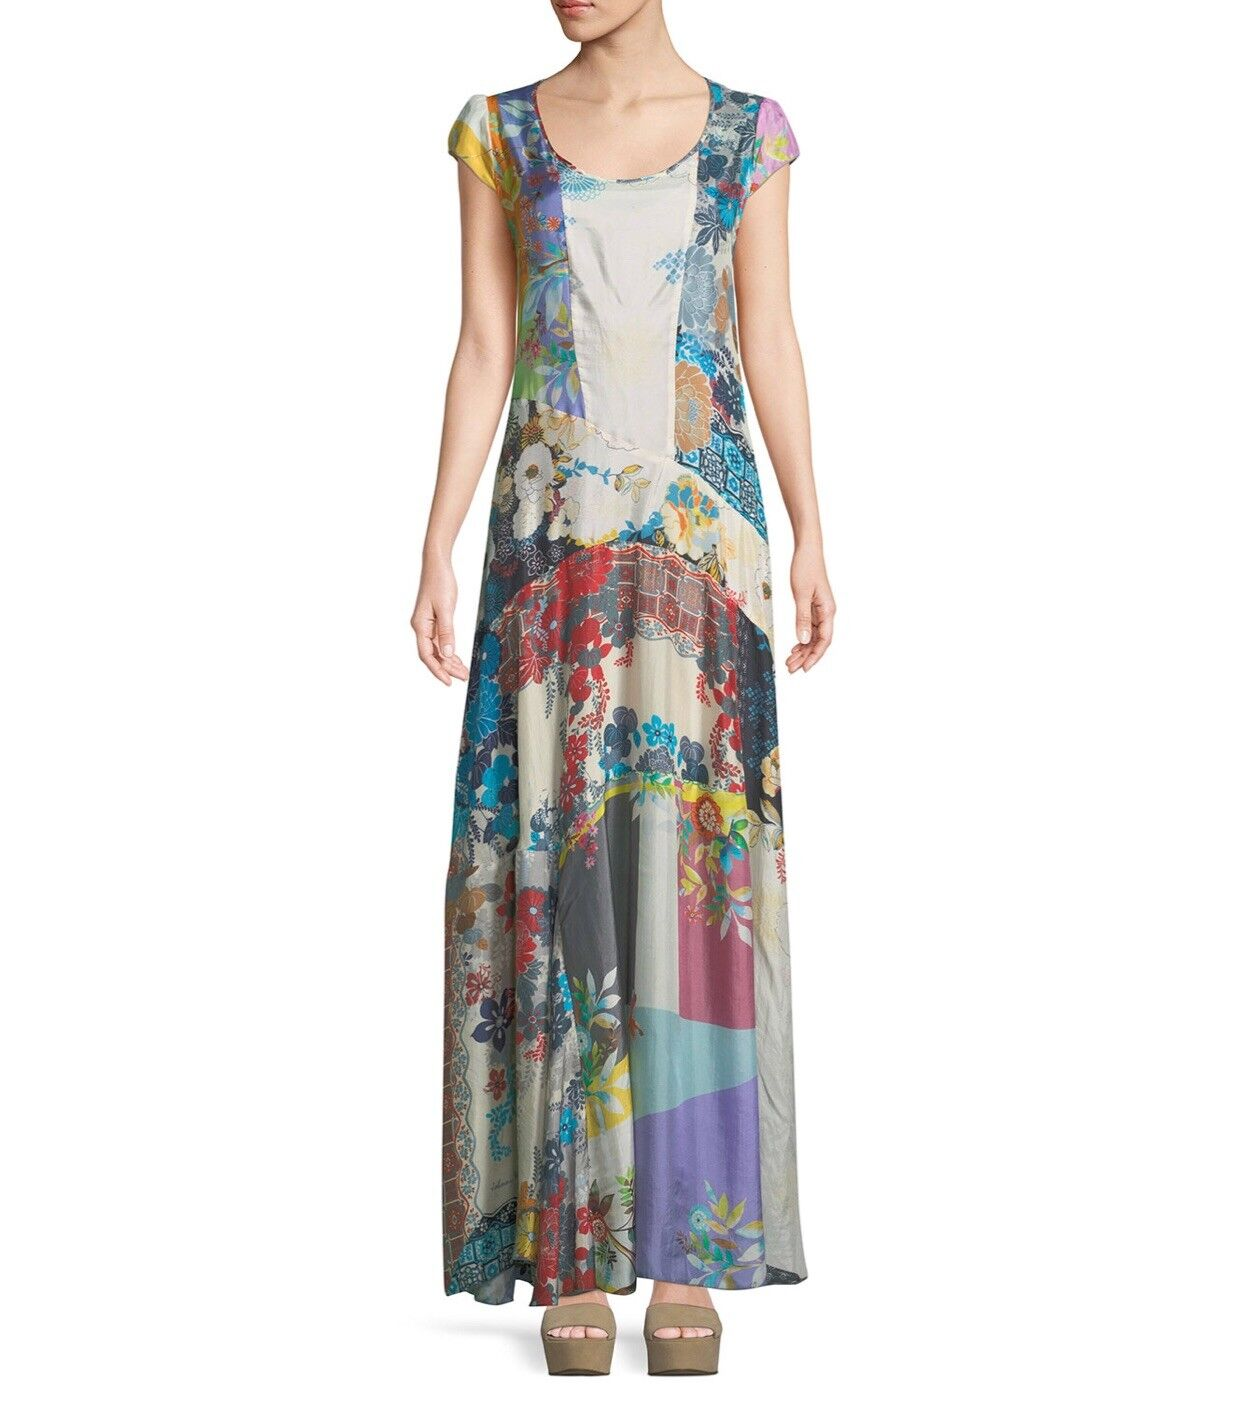 NWT Johnny Was Patchwork Cotton Voile Maxi Maxi Maxi Dress, Ivory color, Size XL 9b24f9